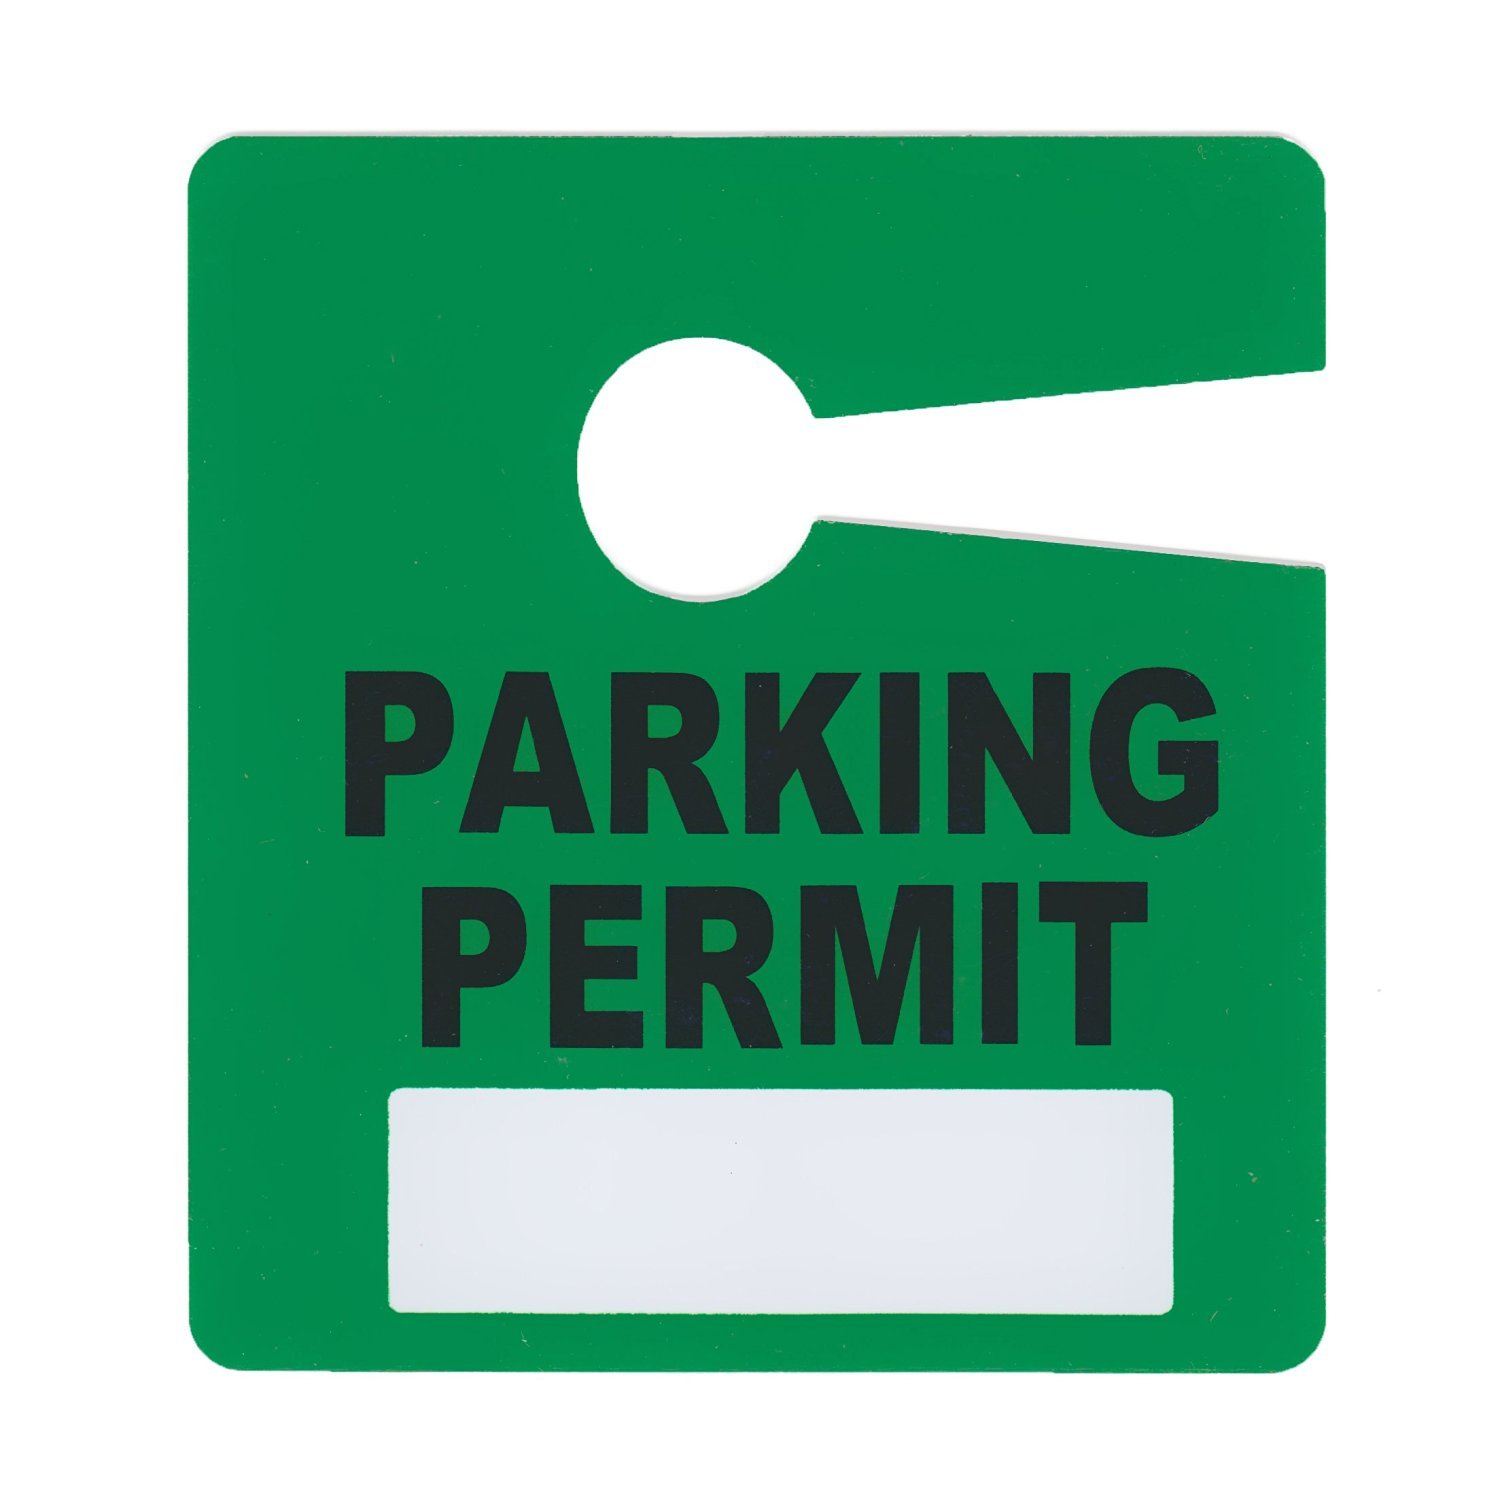 Parking Permit Pass Stock Hang Tags for Employees, Tenants, Students, Businesses, Office, Apartments, 10 Pack (Green)